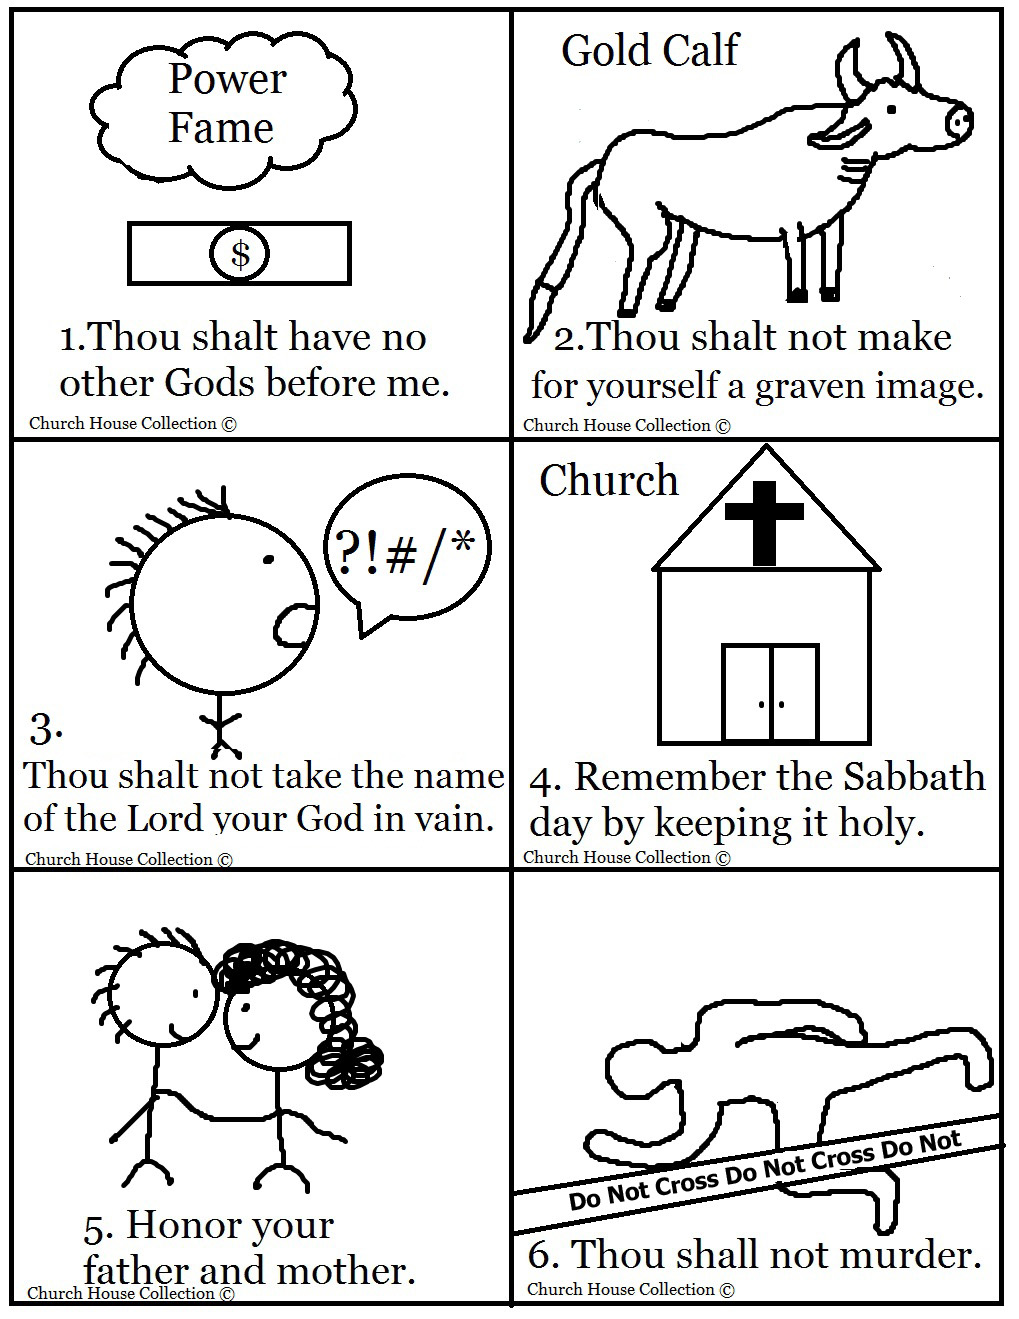 church house collection blog free sunday school lessons for kids